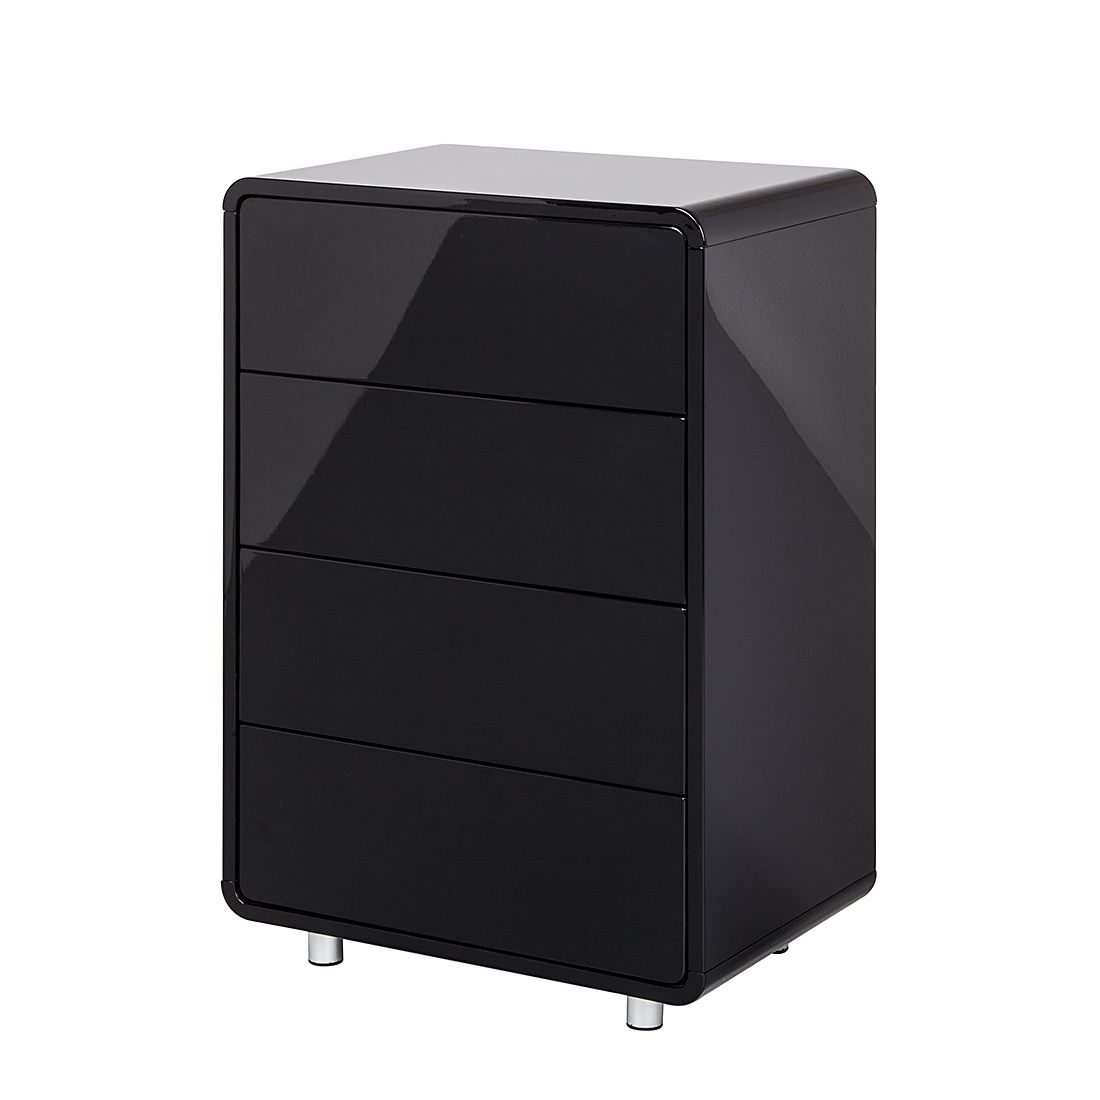 kommode kasy 2 hochglanz schwarz. Black Bedroom Furniture Sets. Home Design Ideas